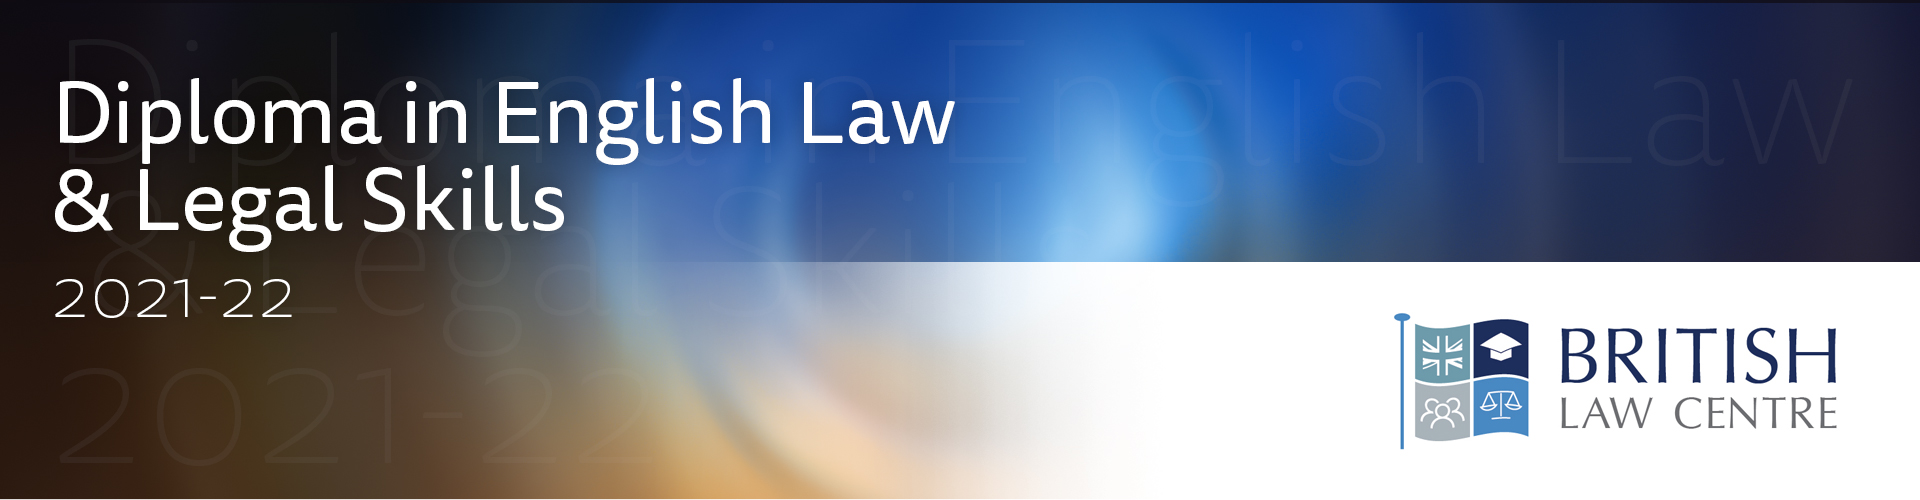 """Recruitment for the 2021-22 Diploma in English Law & Legal Skills (""""DELLS"""")"""